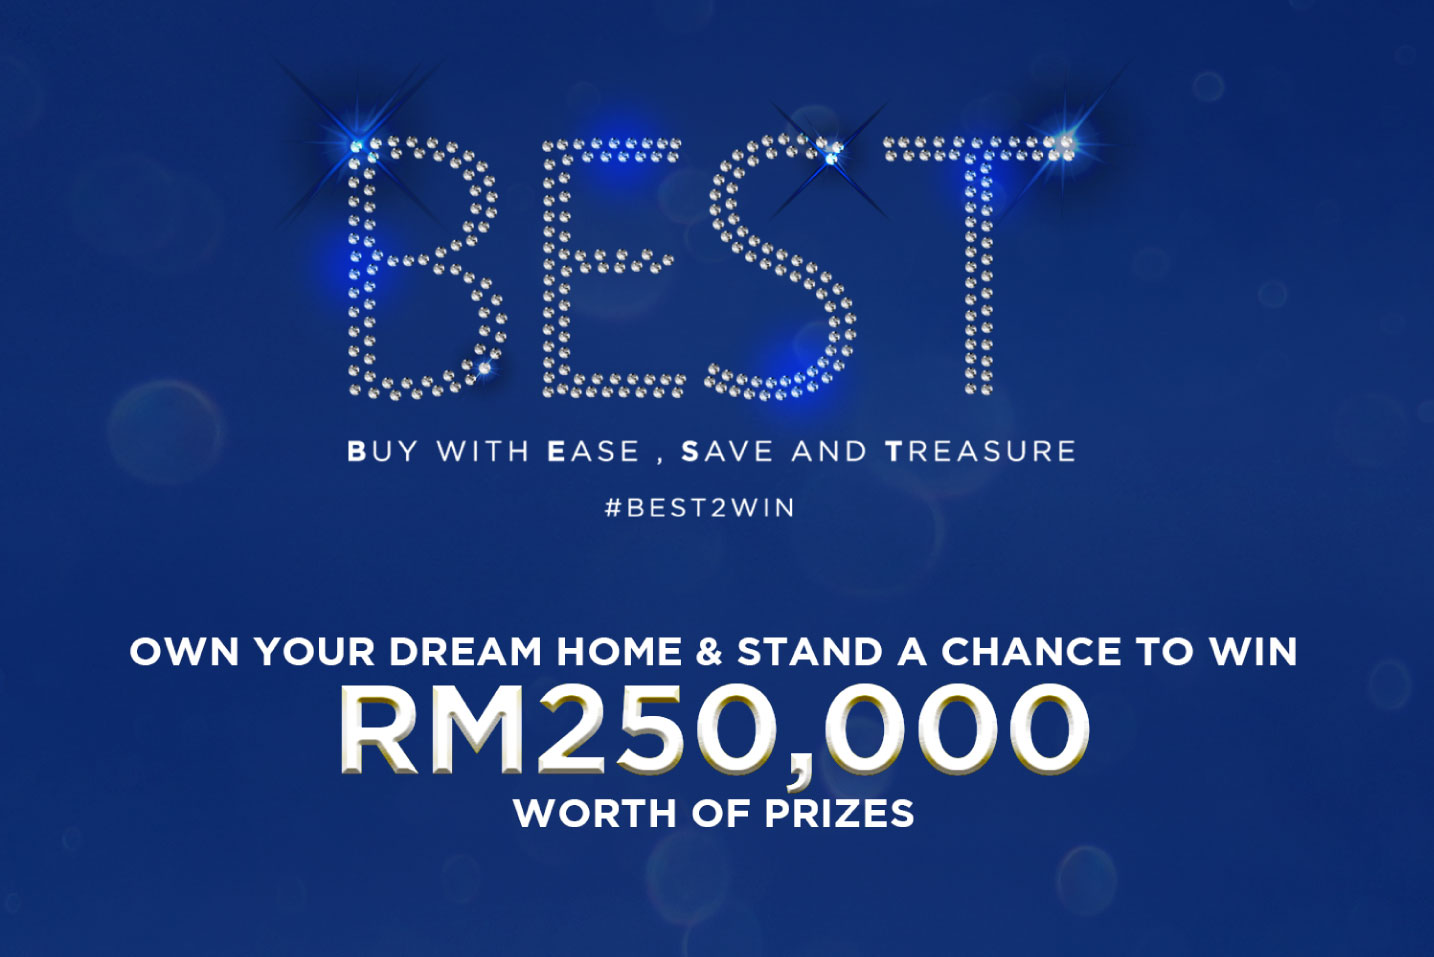 GuocoLand (Malaysia) Berhad launches 'BEST' campaign with prizes worth a total of RM250,000 in conjunction with HOC